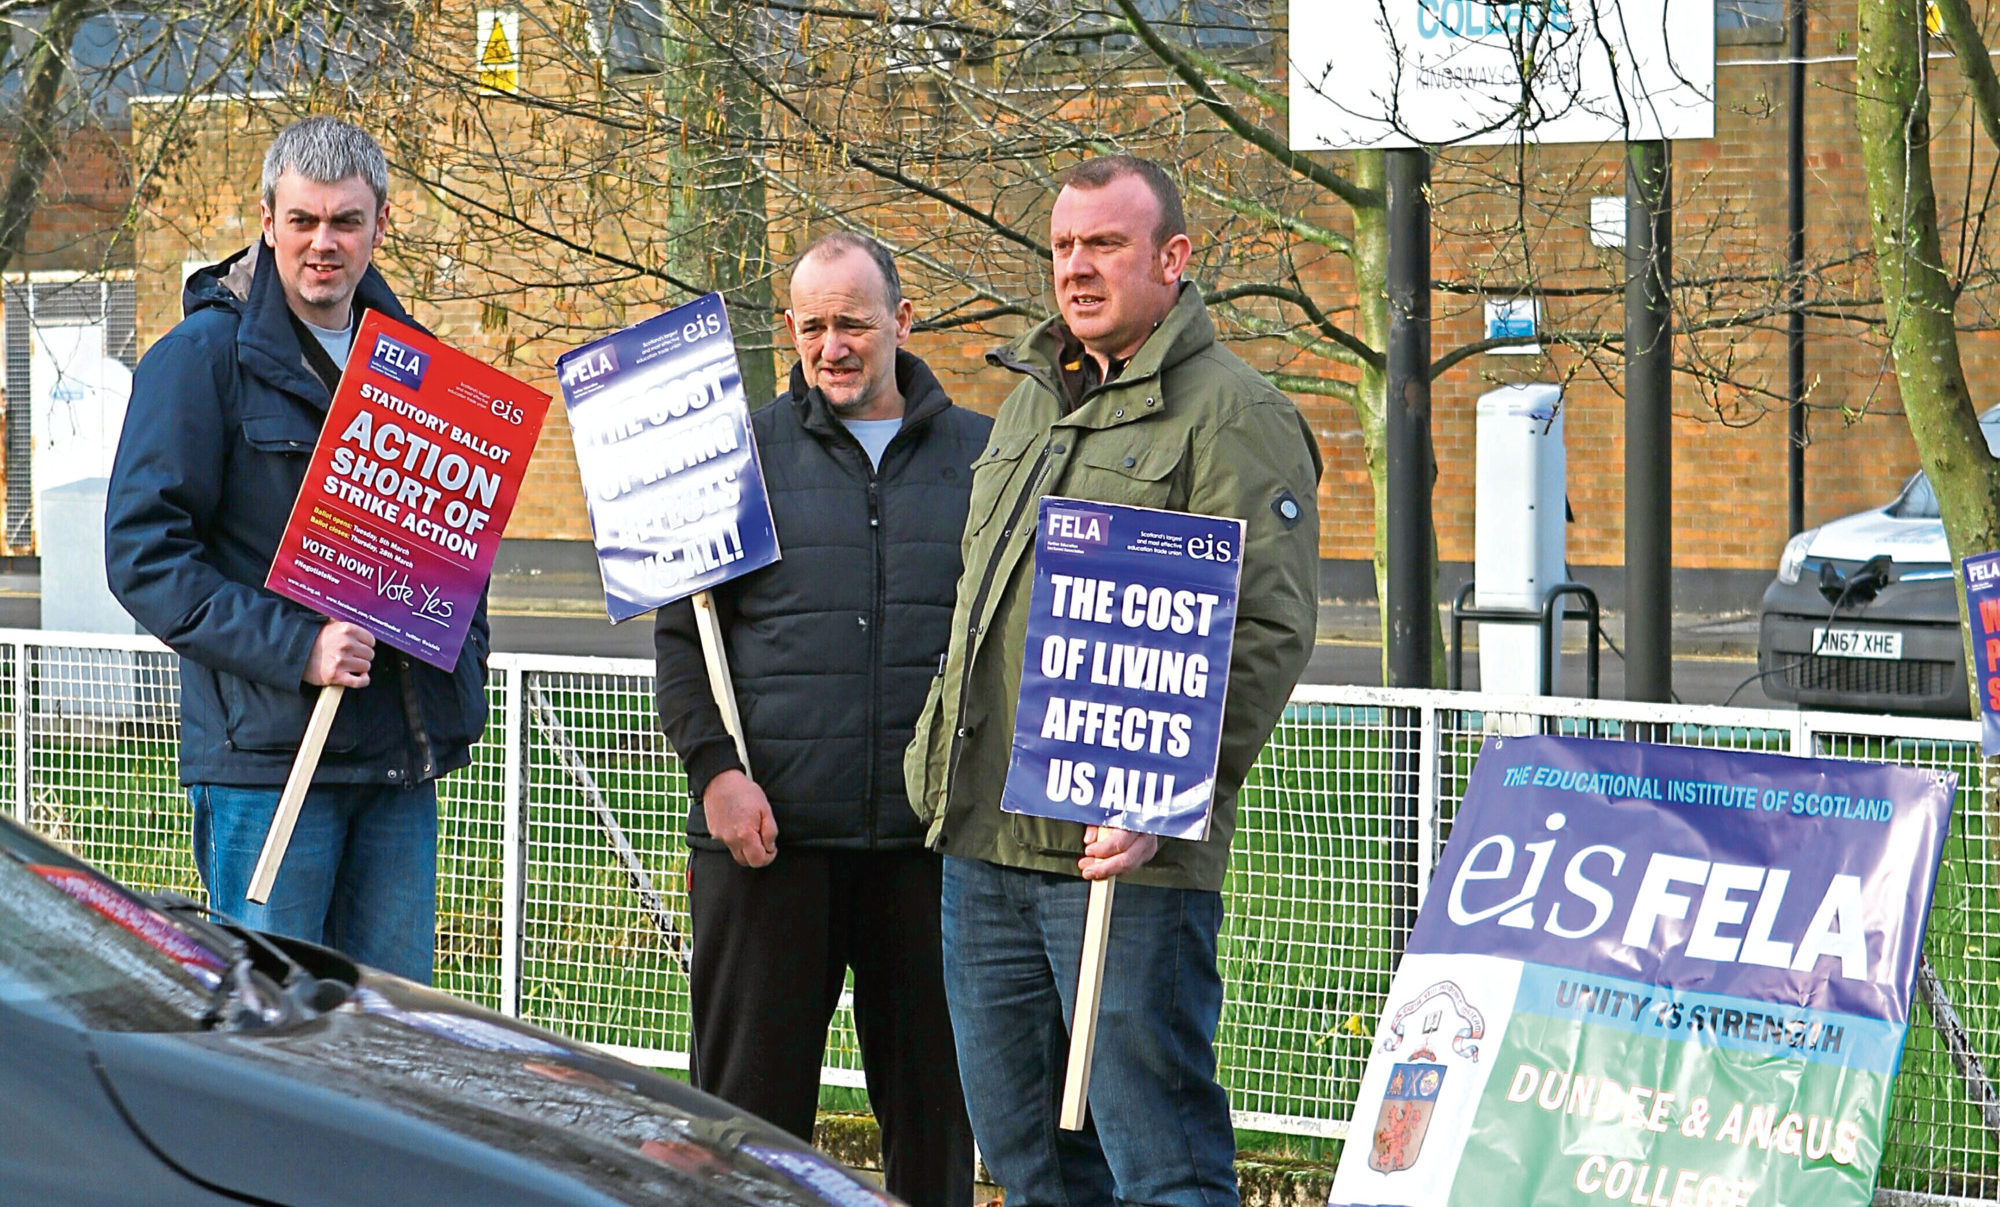 Protesters outside the college